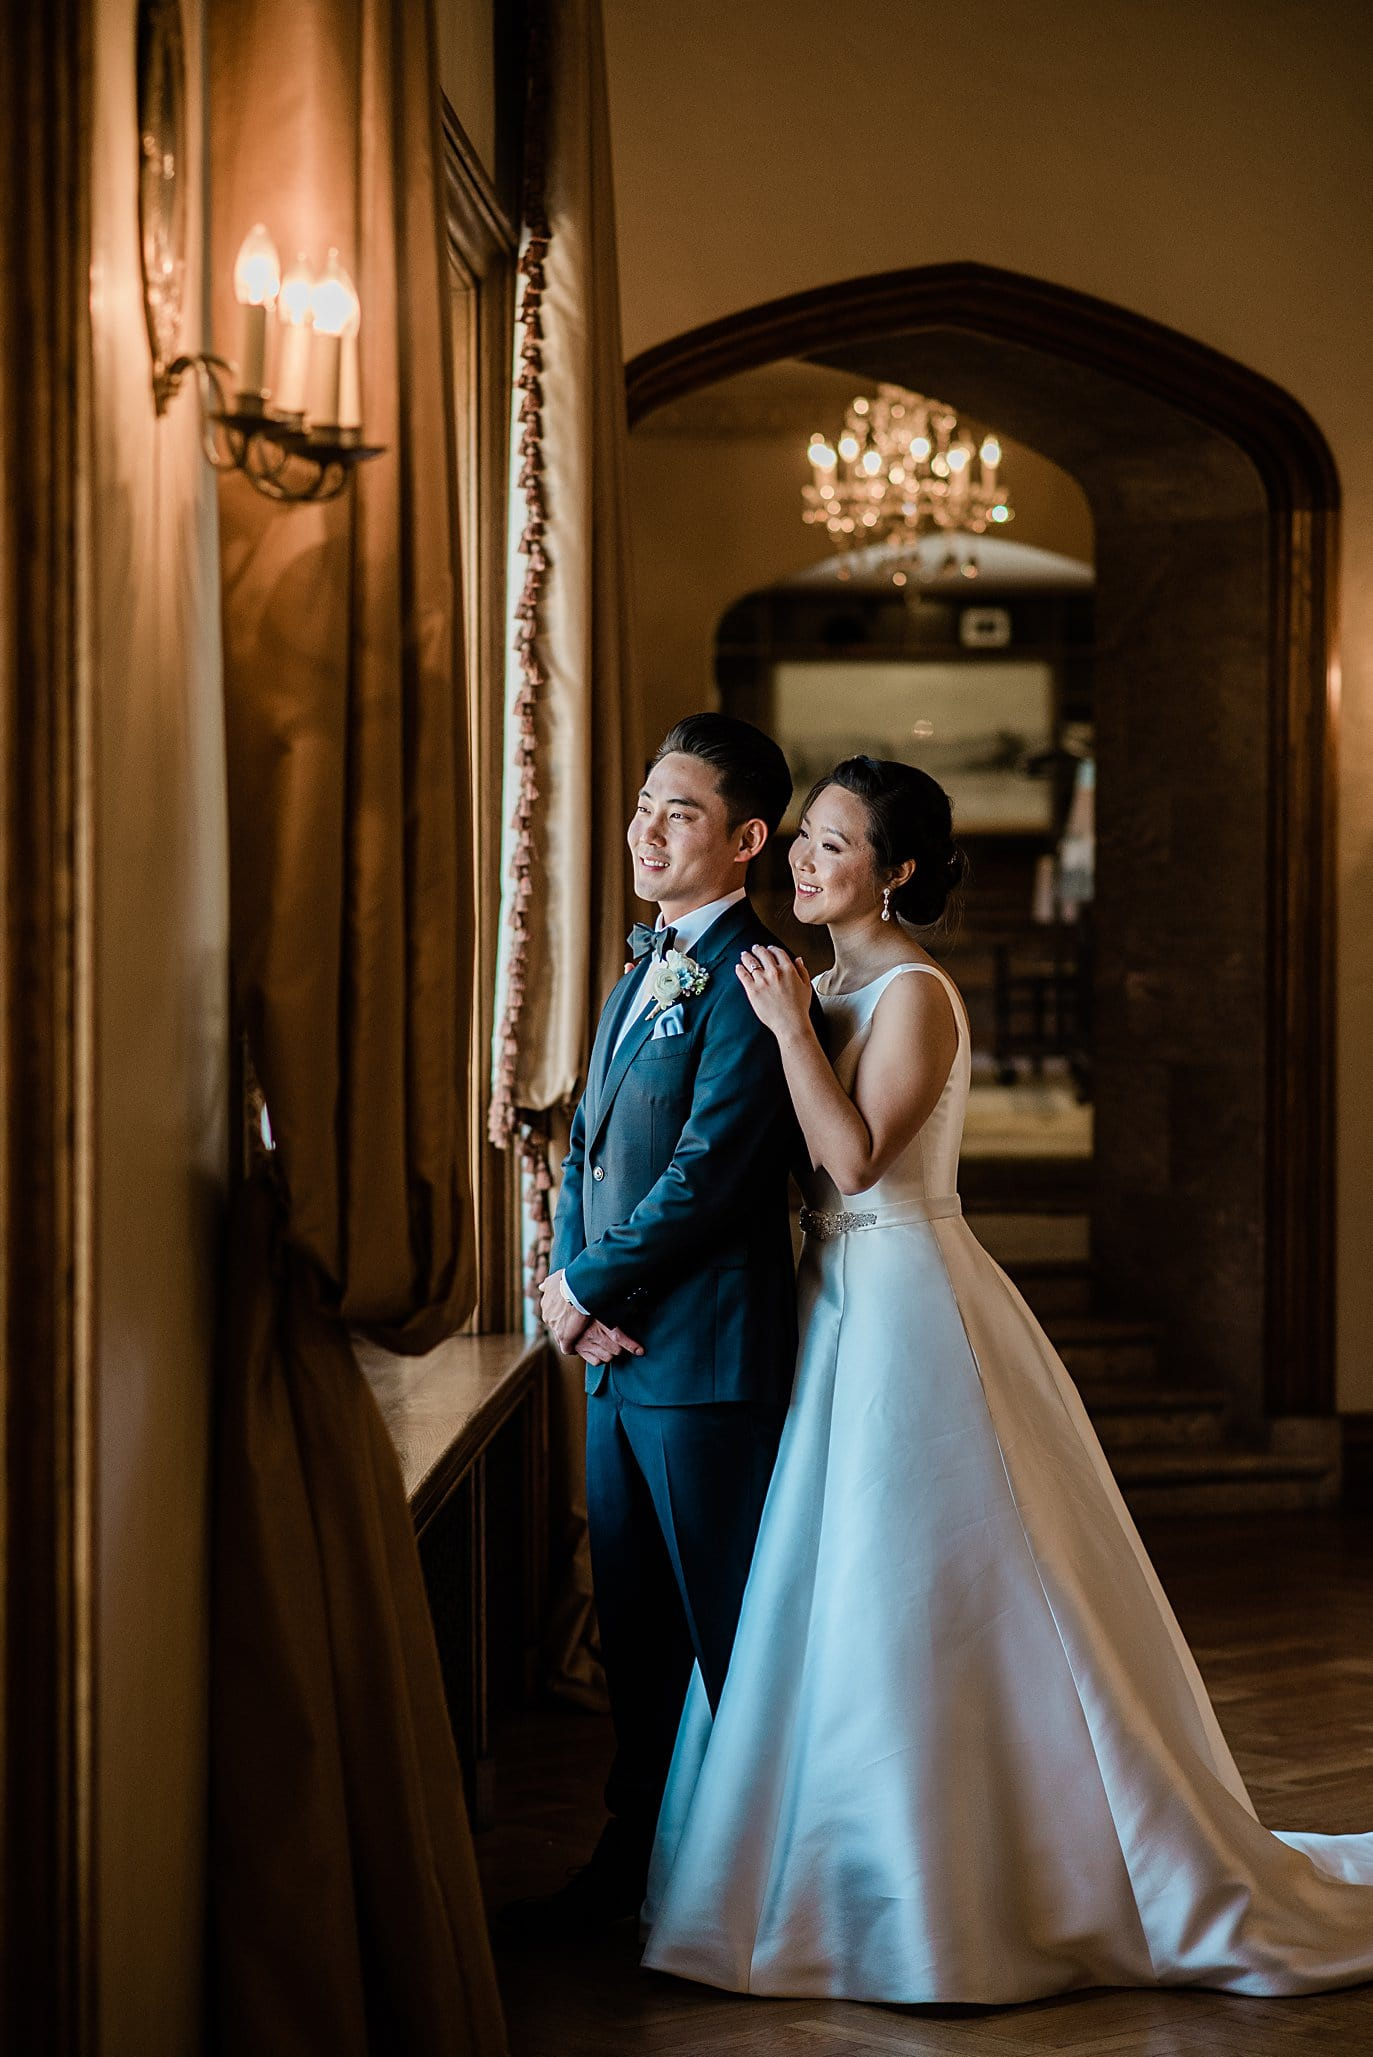 bride and groom by window in parlor at Highlands Ranch Mansion wedding by Denver wedding photographer Jennie Crate